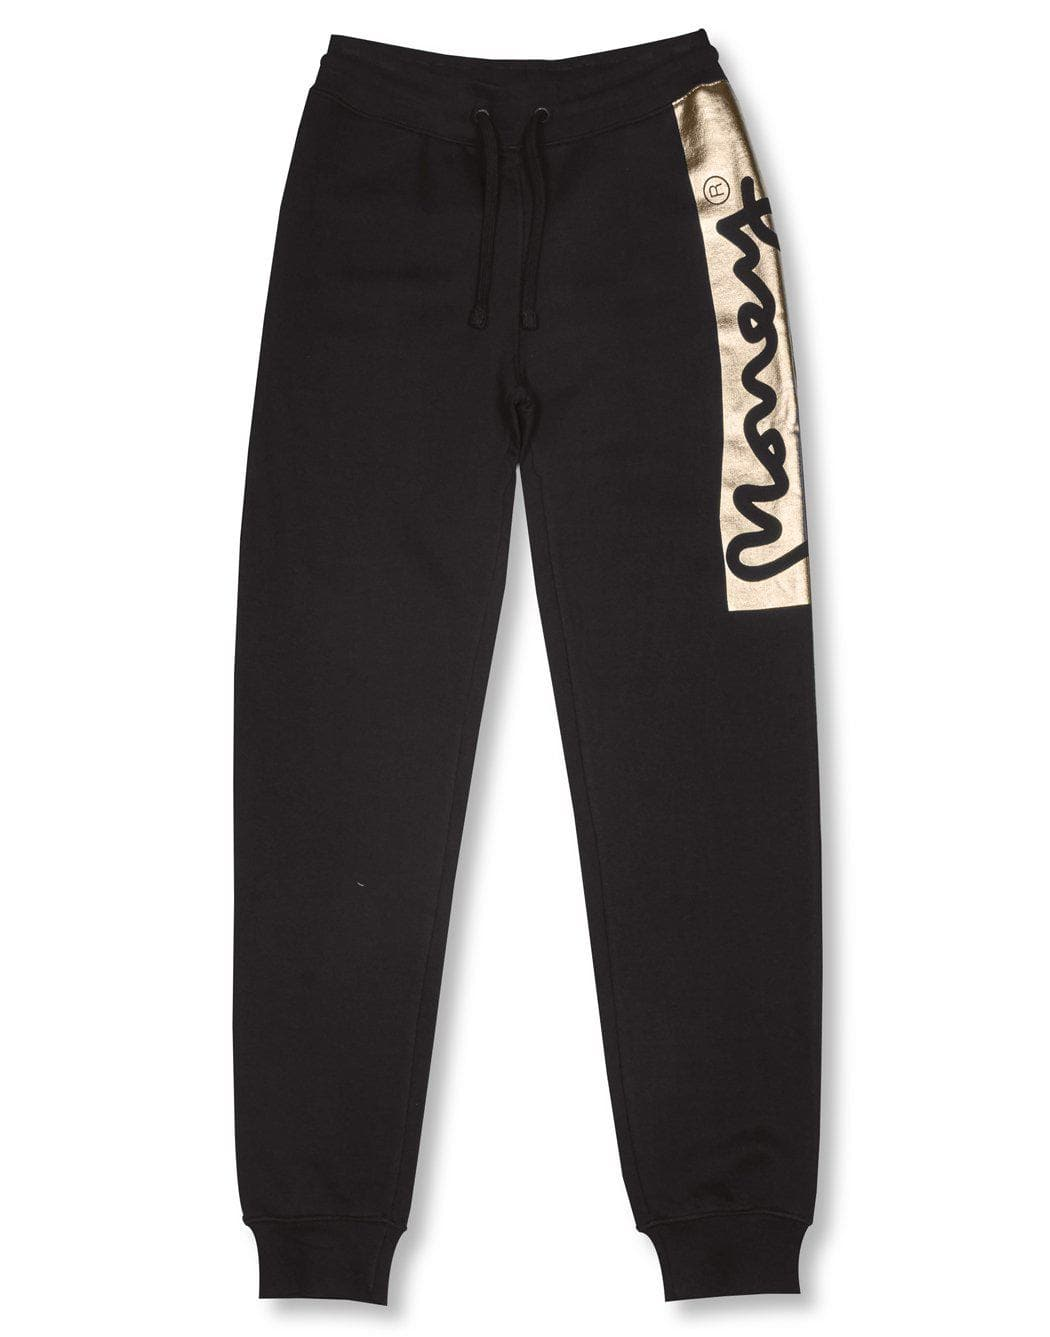 Money Clothing block signature logo track pants in black